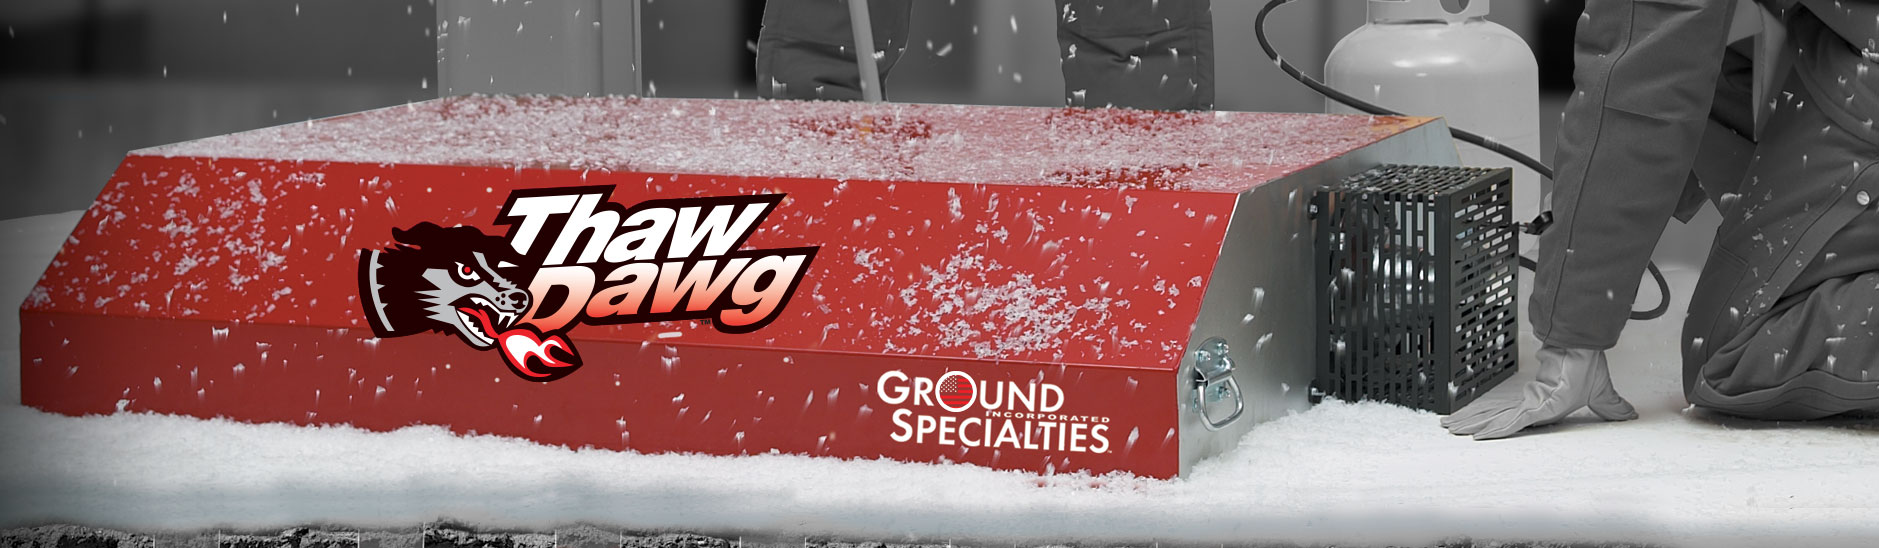 Thawdawg And Ground Specialties Ground Specialties